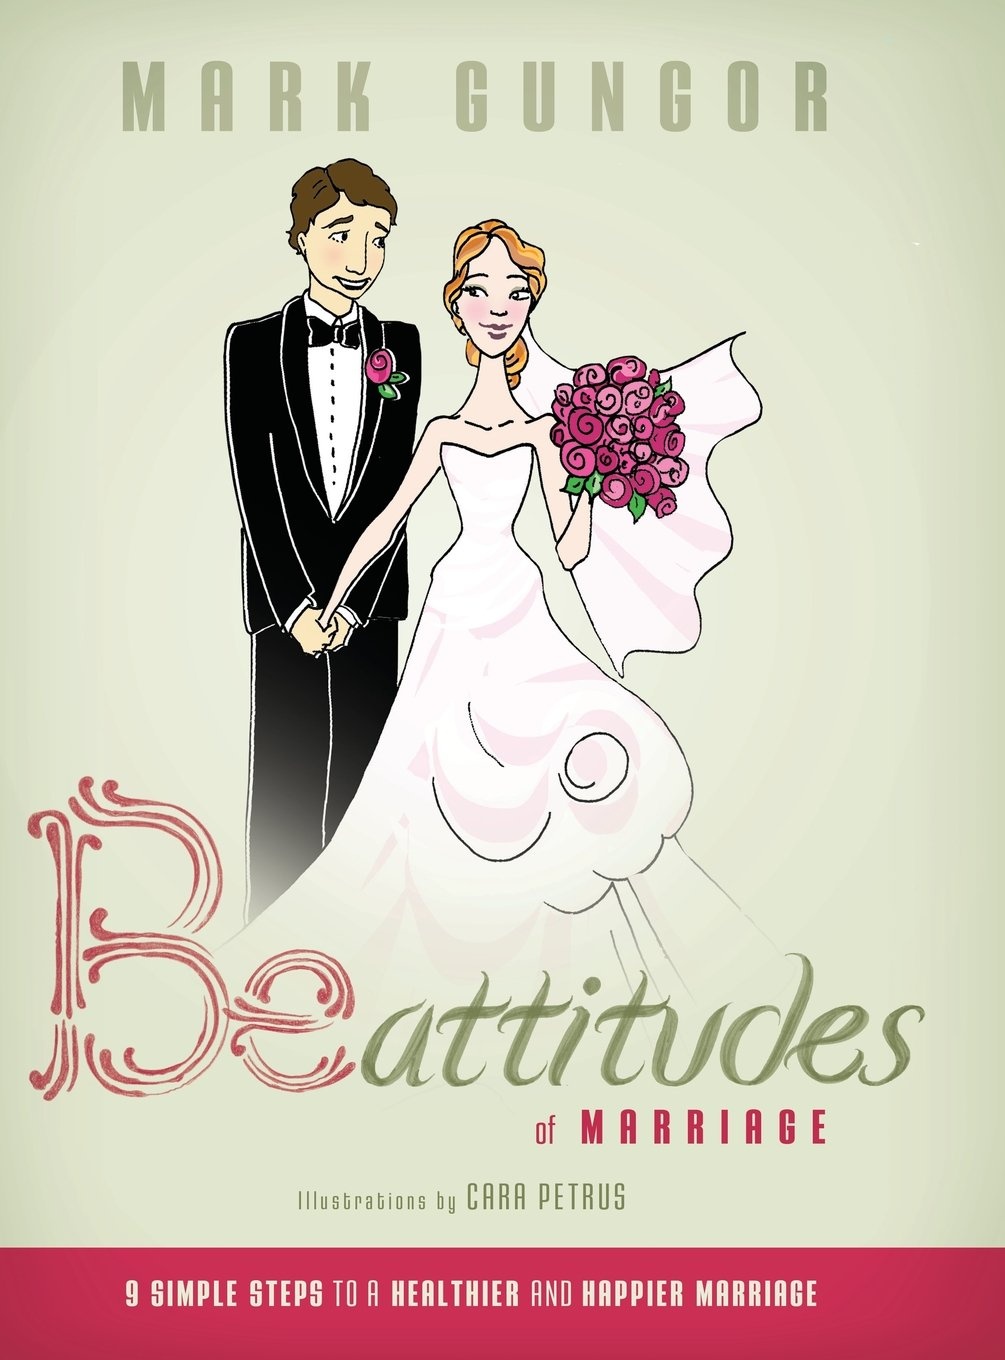 Be-Attitudes of Marriage: 9 Simple Steps to a Healthier and Happier Marriage pdf